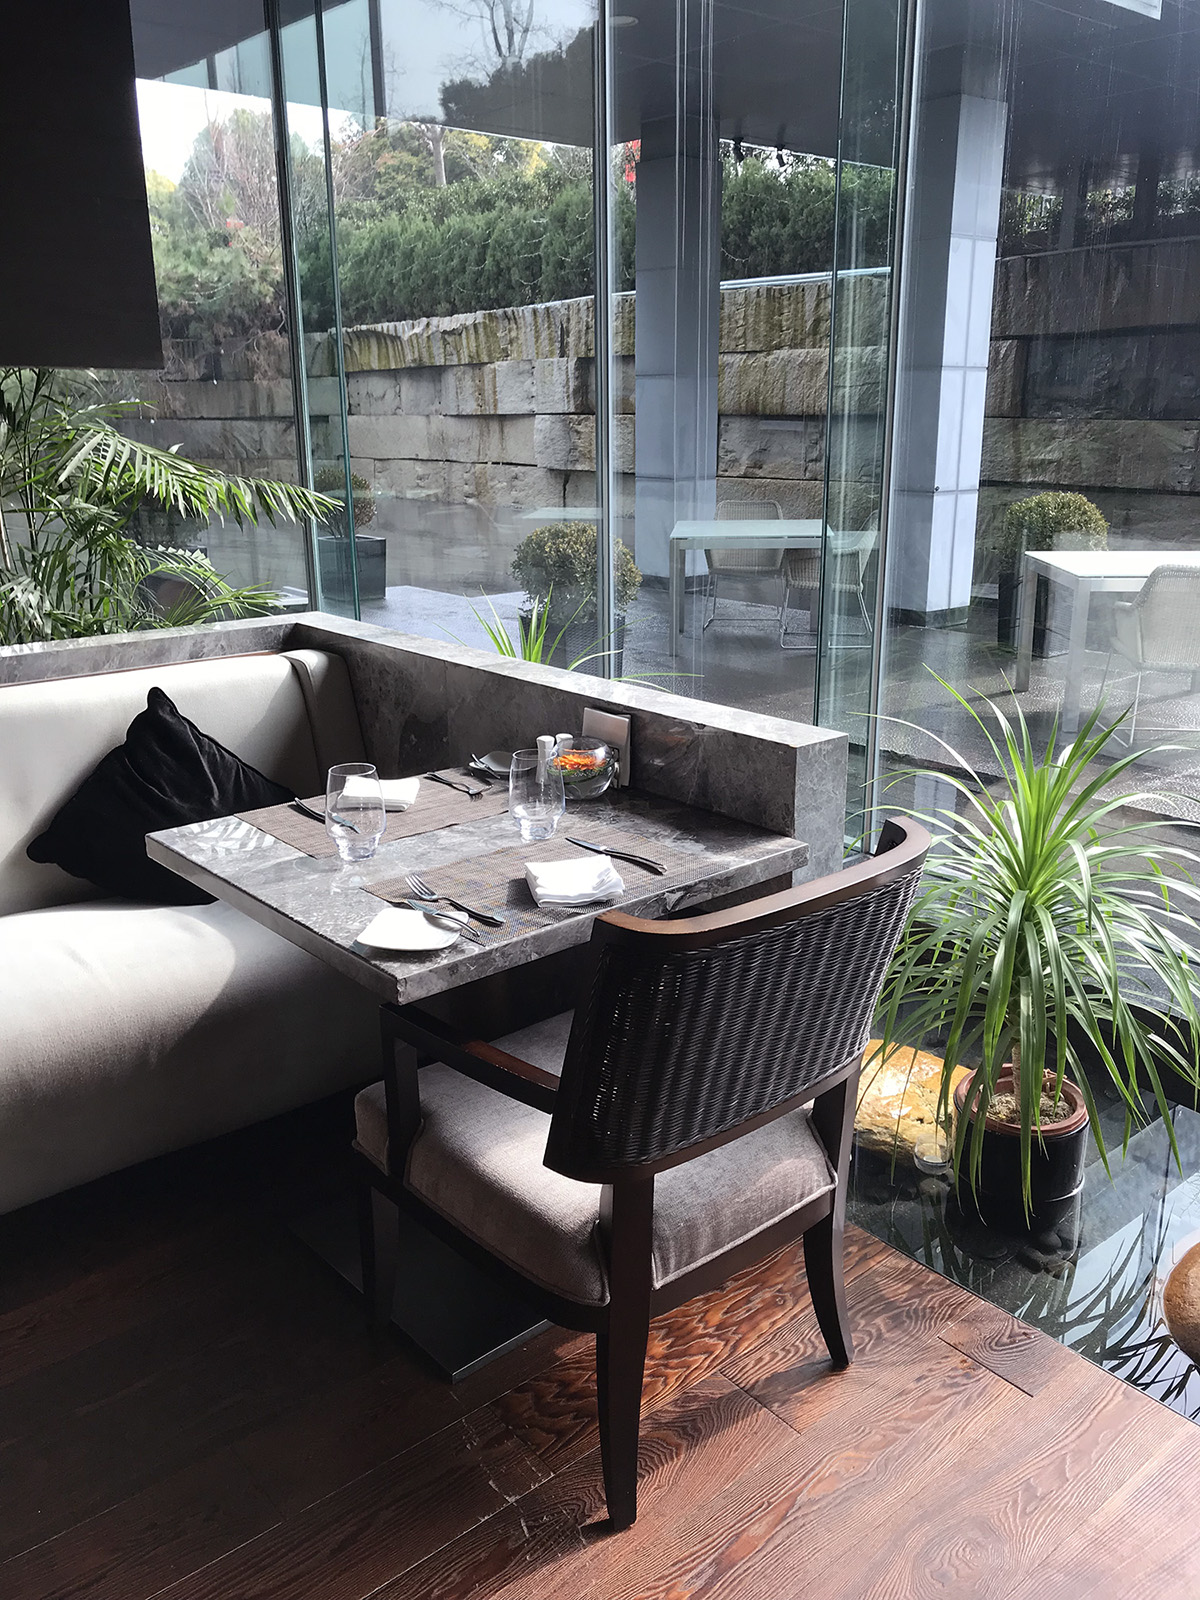 Banyan Tree Shanghai on the Bund - Hotel Room with a Pool and a View   Of Leather and Lace - Fashion & Travel Blog by Tina Lee   hotel review, shanghai city, restaurant